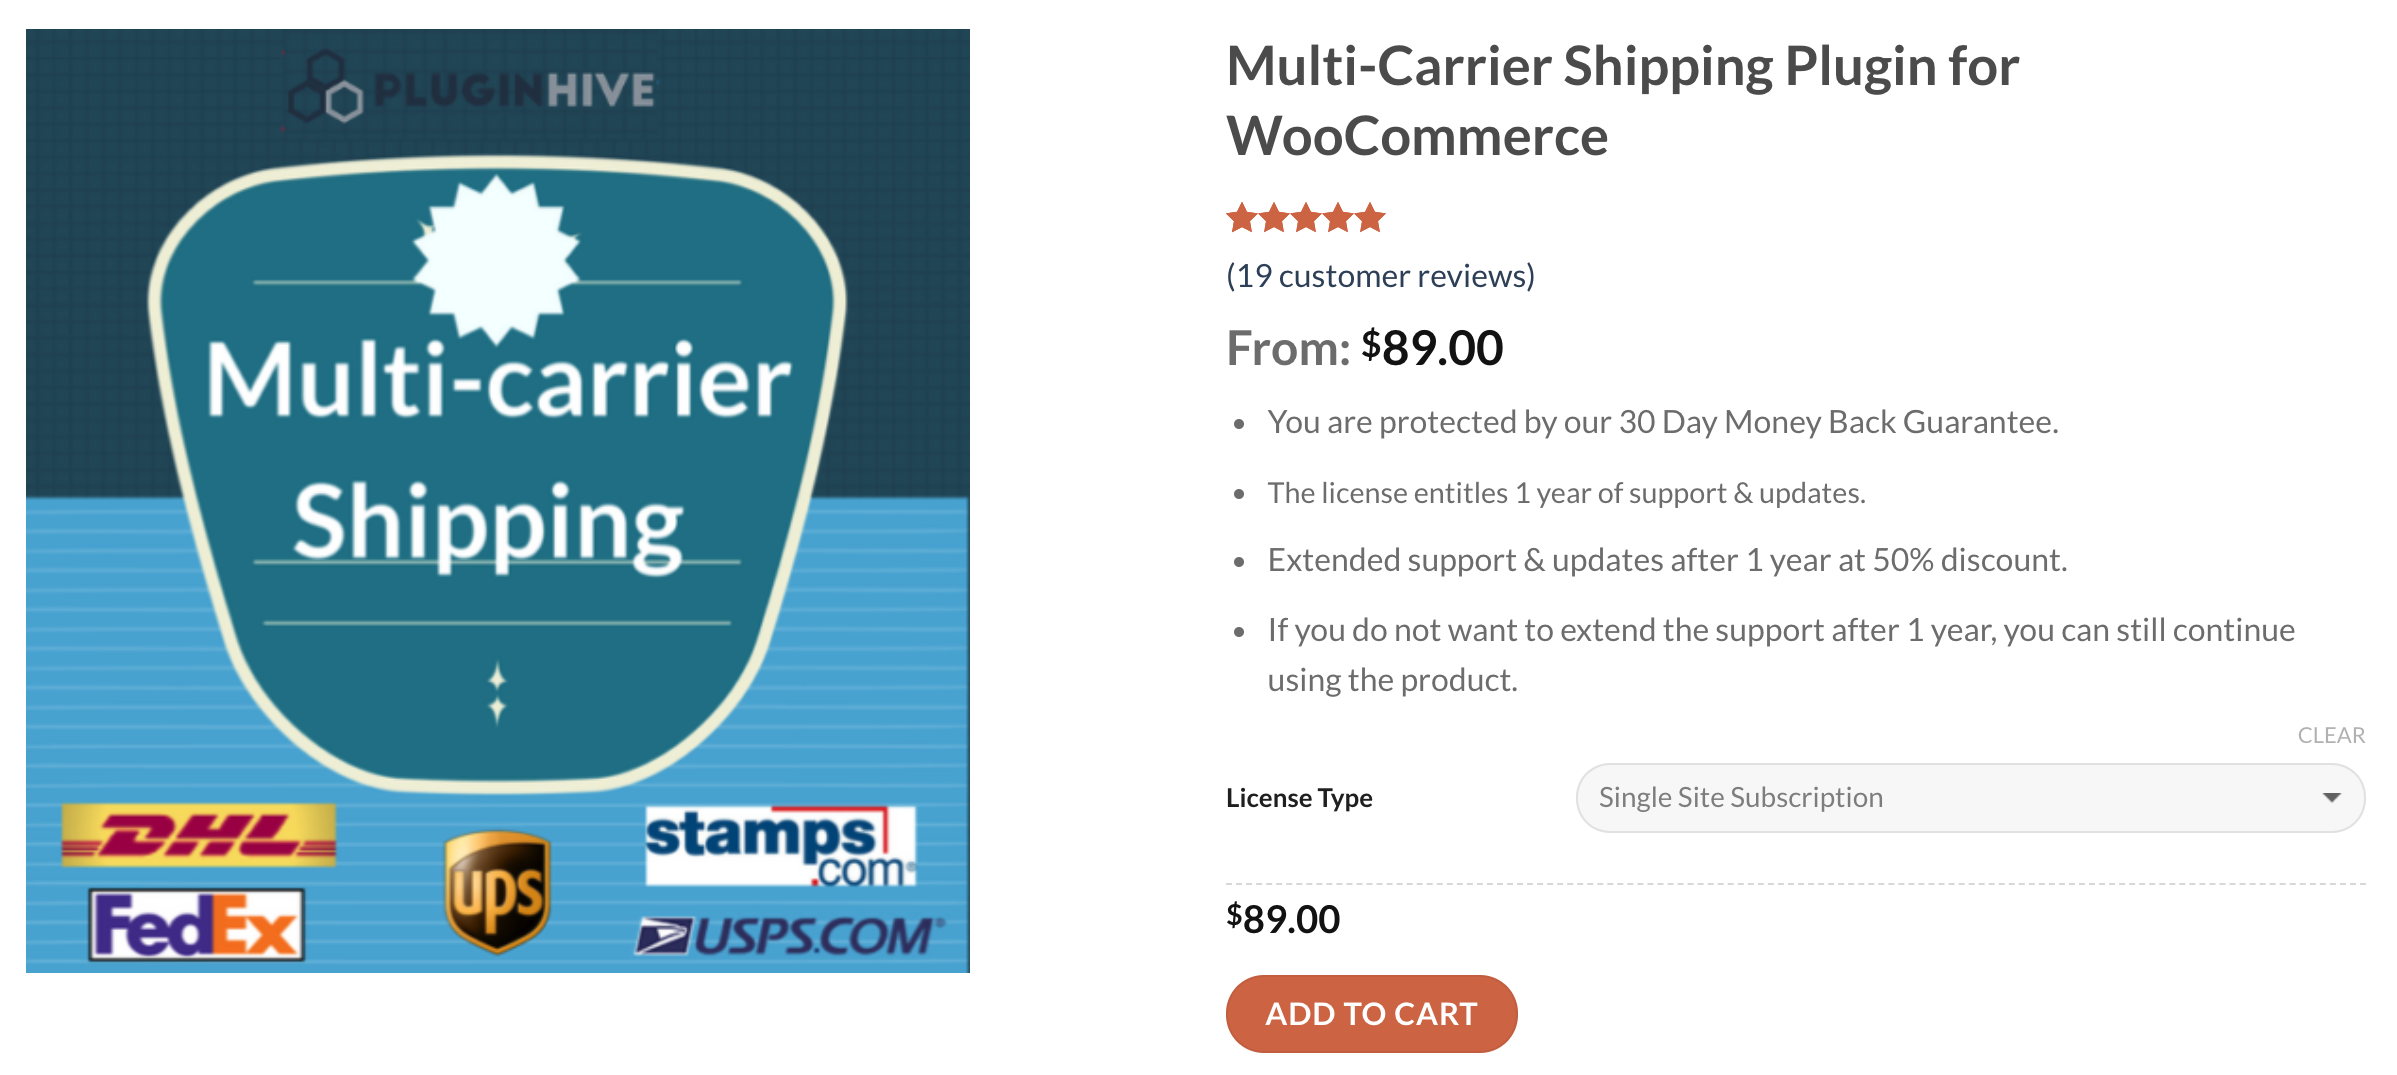 woocommerce multi-carrier shipping